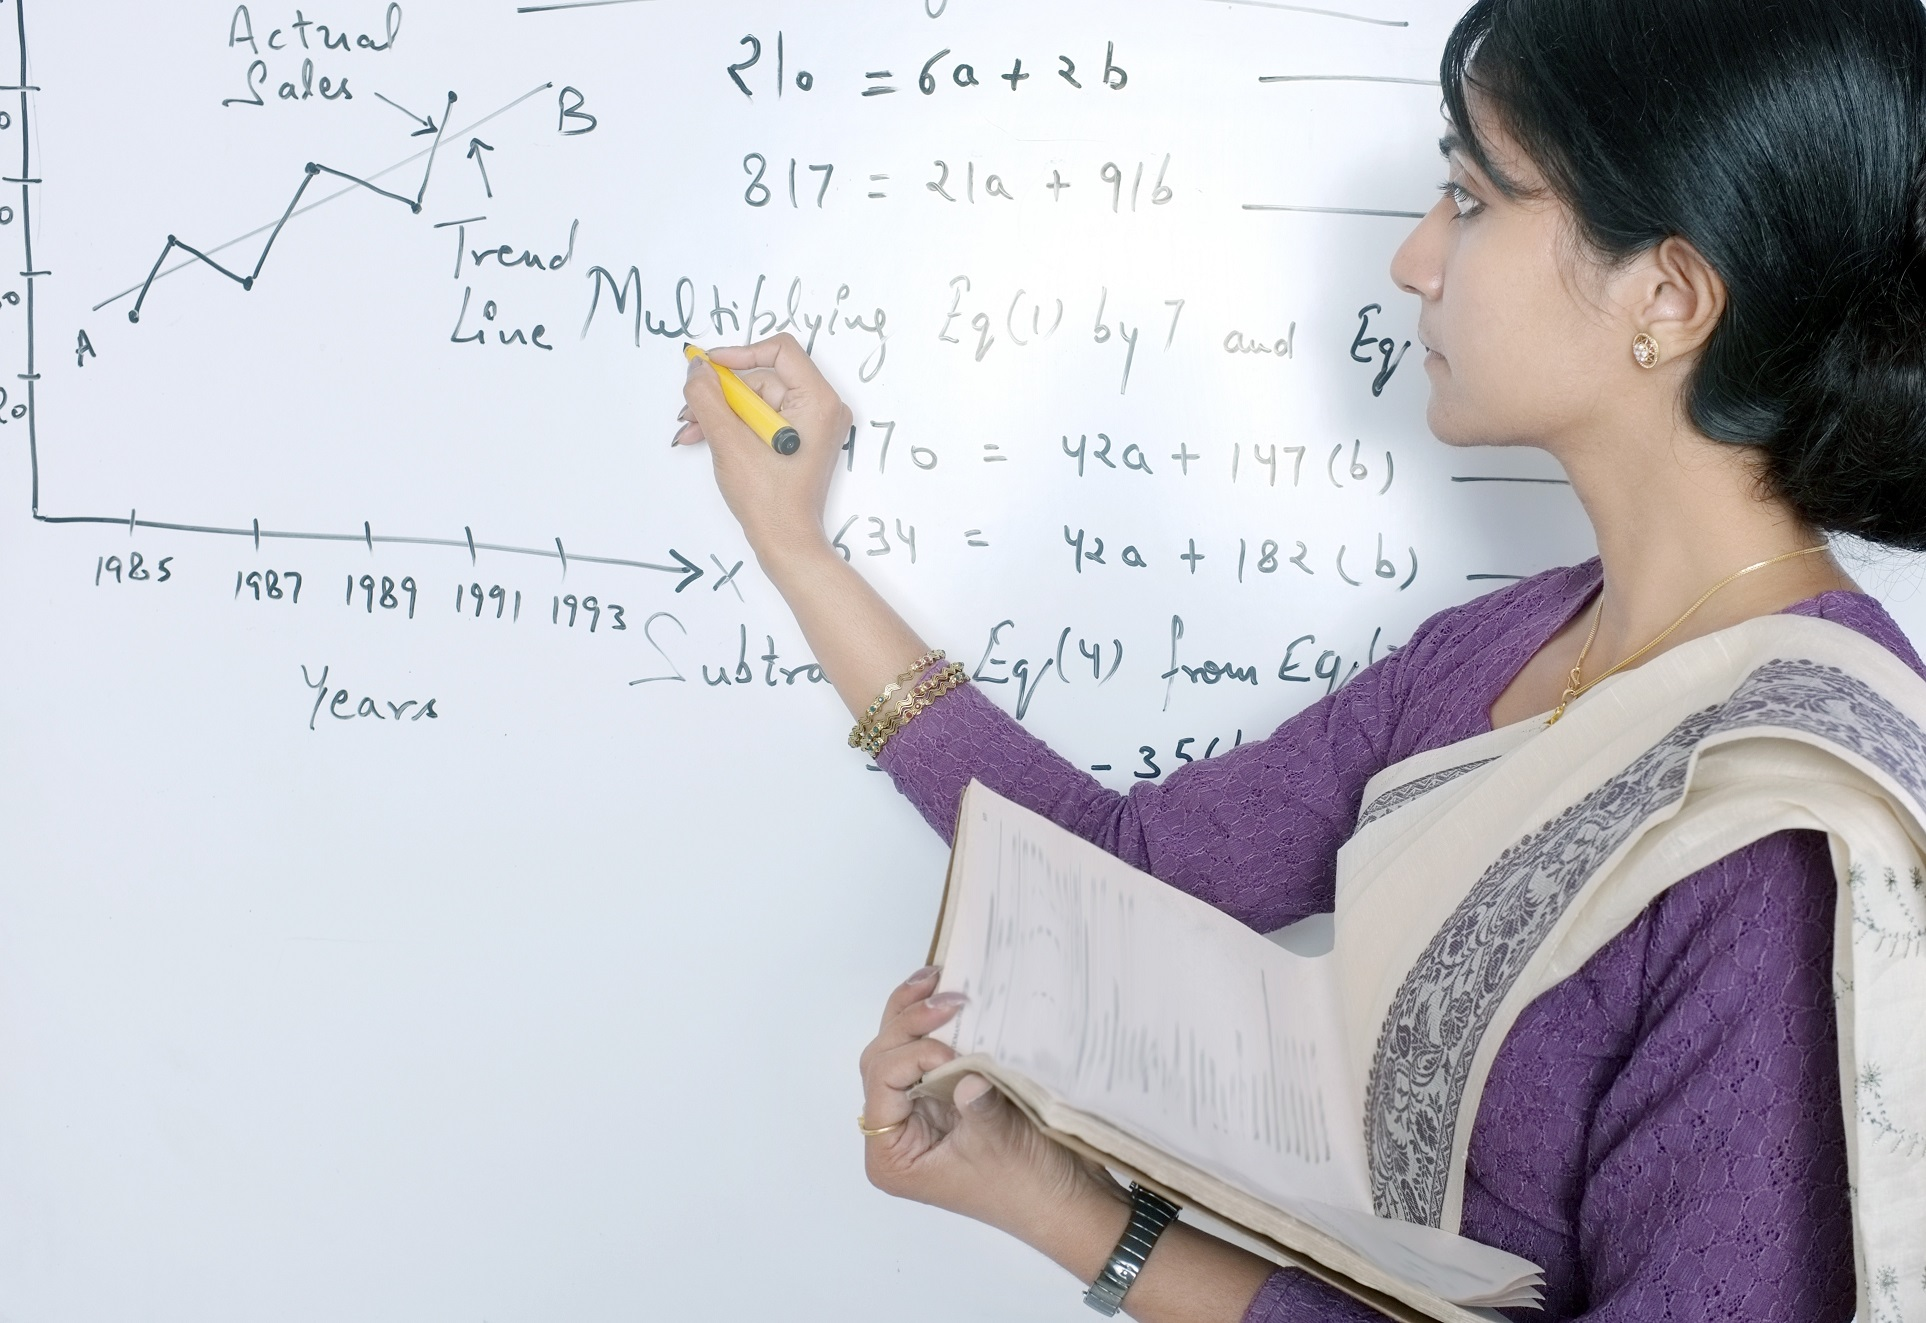 Indian professor doing an equation